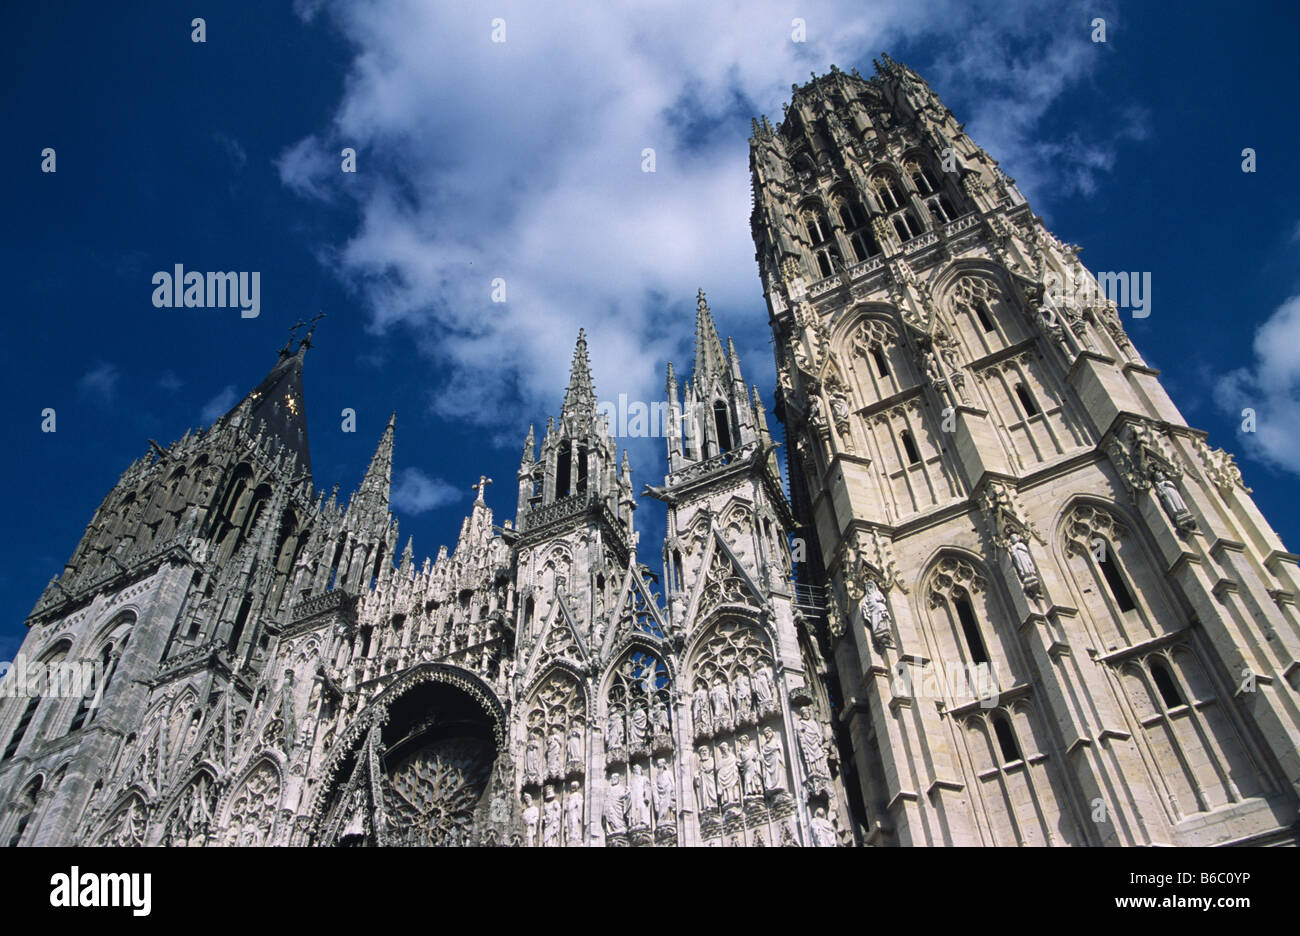 West facade of Rouen Cathedral, Rouen, Normandy, France - Stock Image